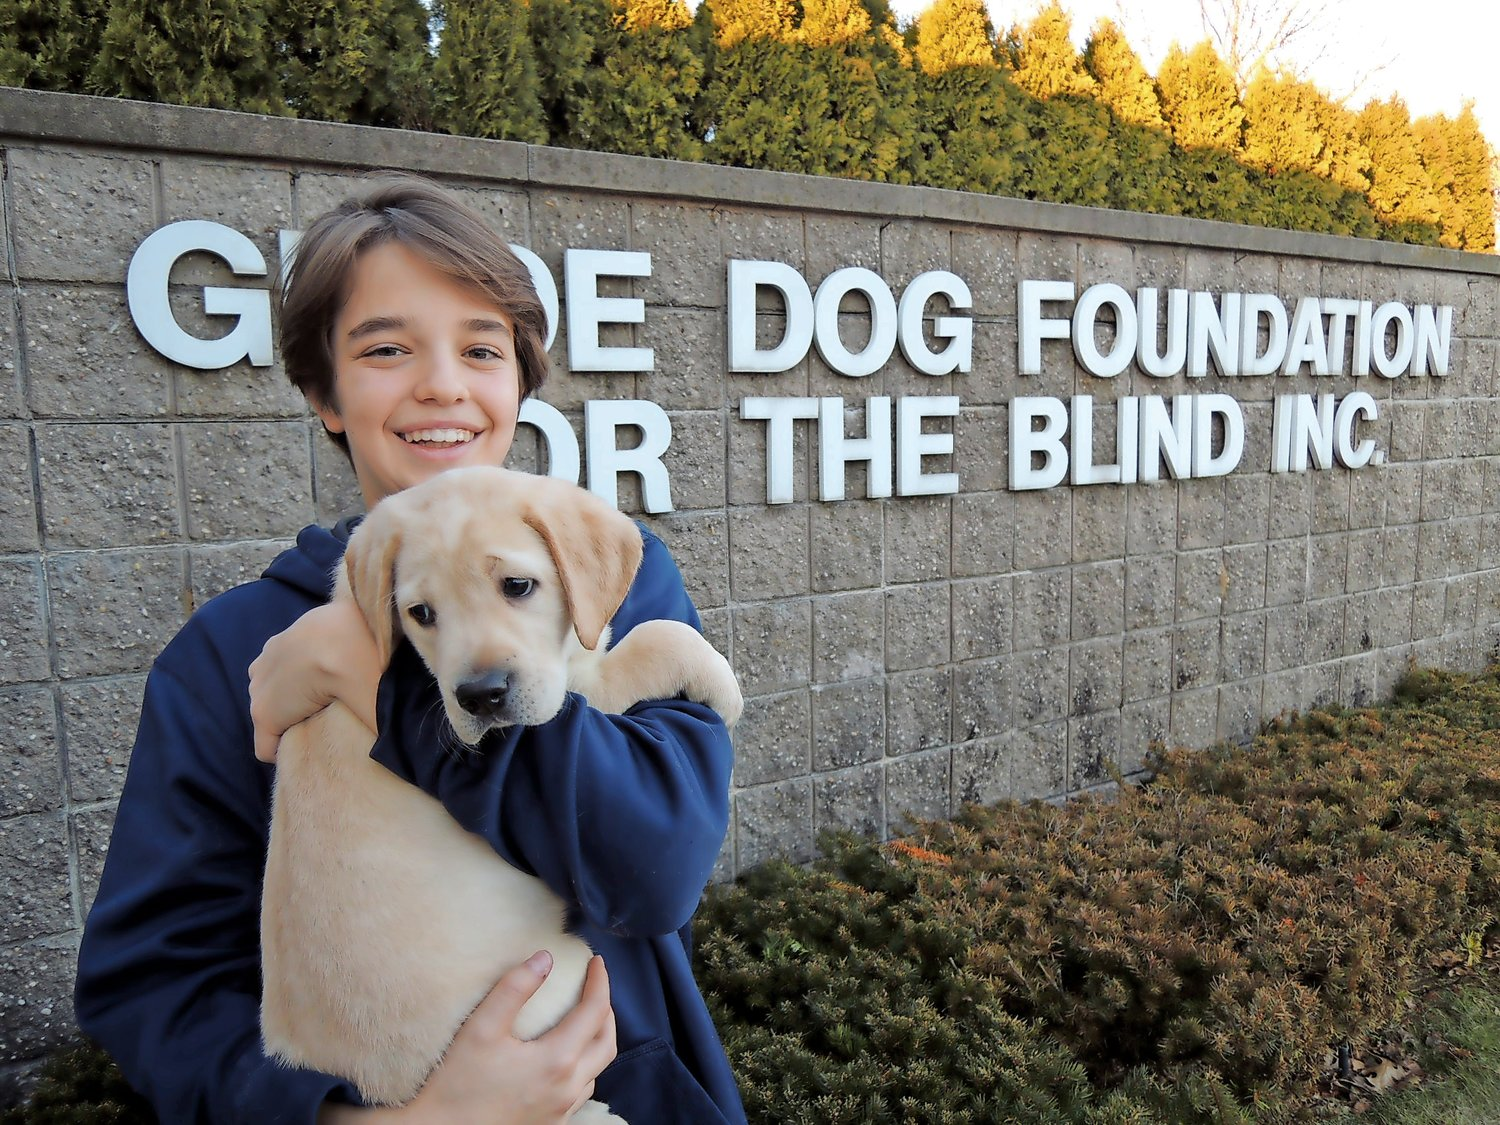 Each year, Oceanside sophomore Jeremy Feder raises thousands of dollars for America's VetDogs, which was originally founded under the Guide Dog Foundation for the Blind, Inc.